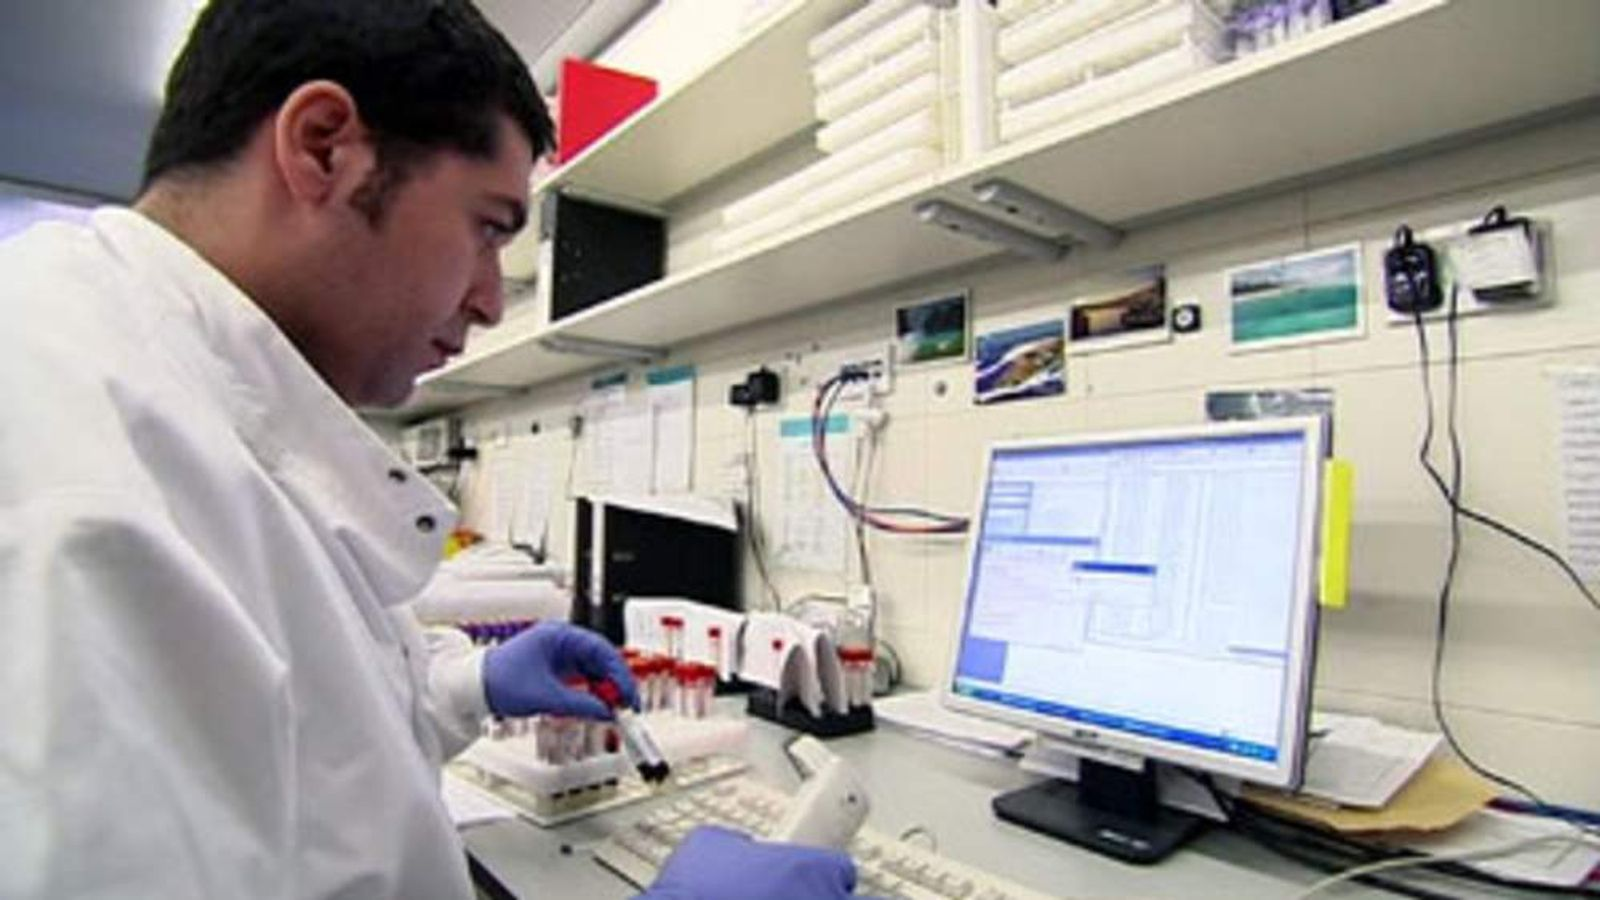 A lab worker with blood test samples checking for ovarian cancer